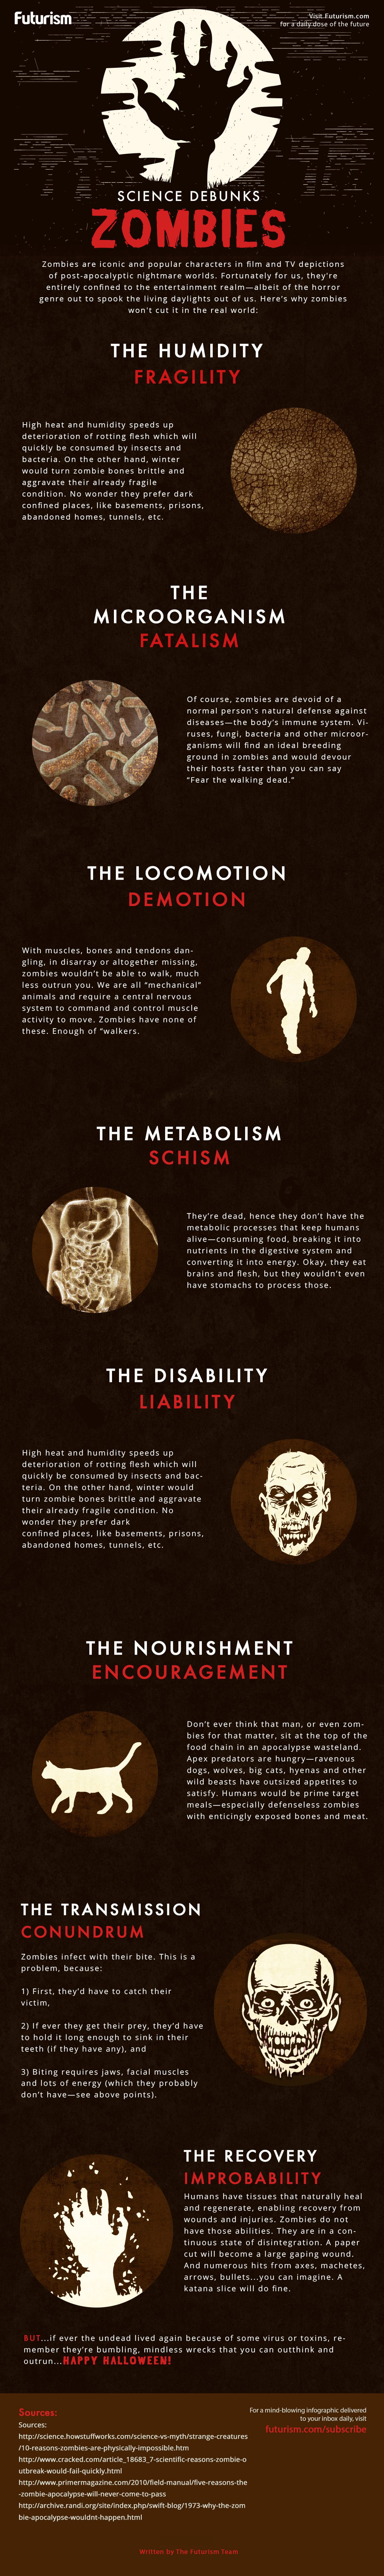 Why Zombies Can Never Rule the World: Science Debunks Myths - Infographic